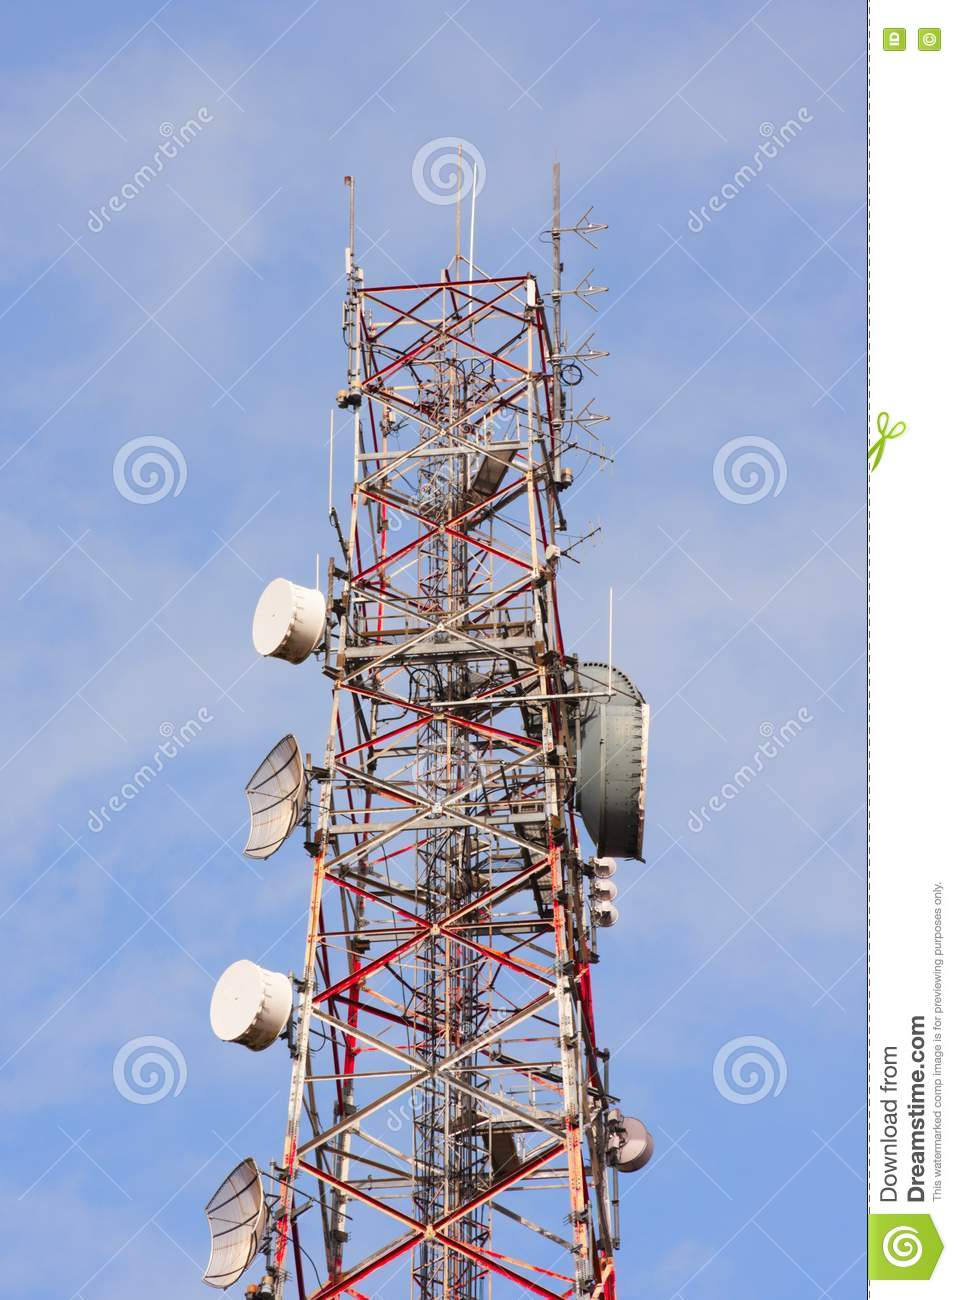 Telecommunication Room Design: Telecommunication Tower Stock Image. Image Of Clear